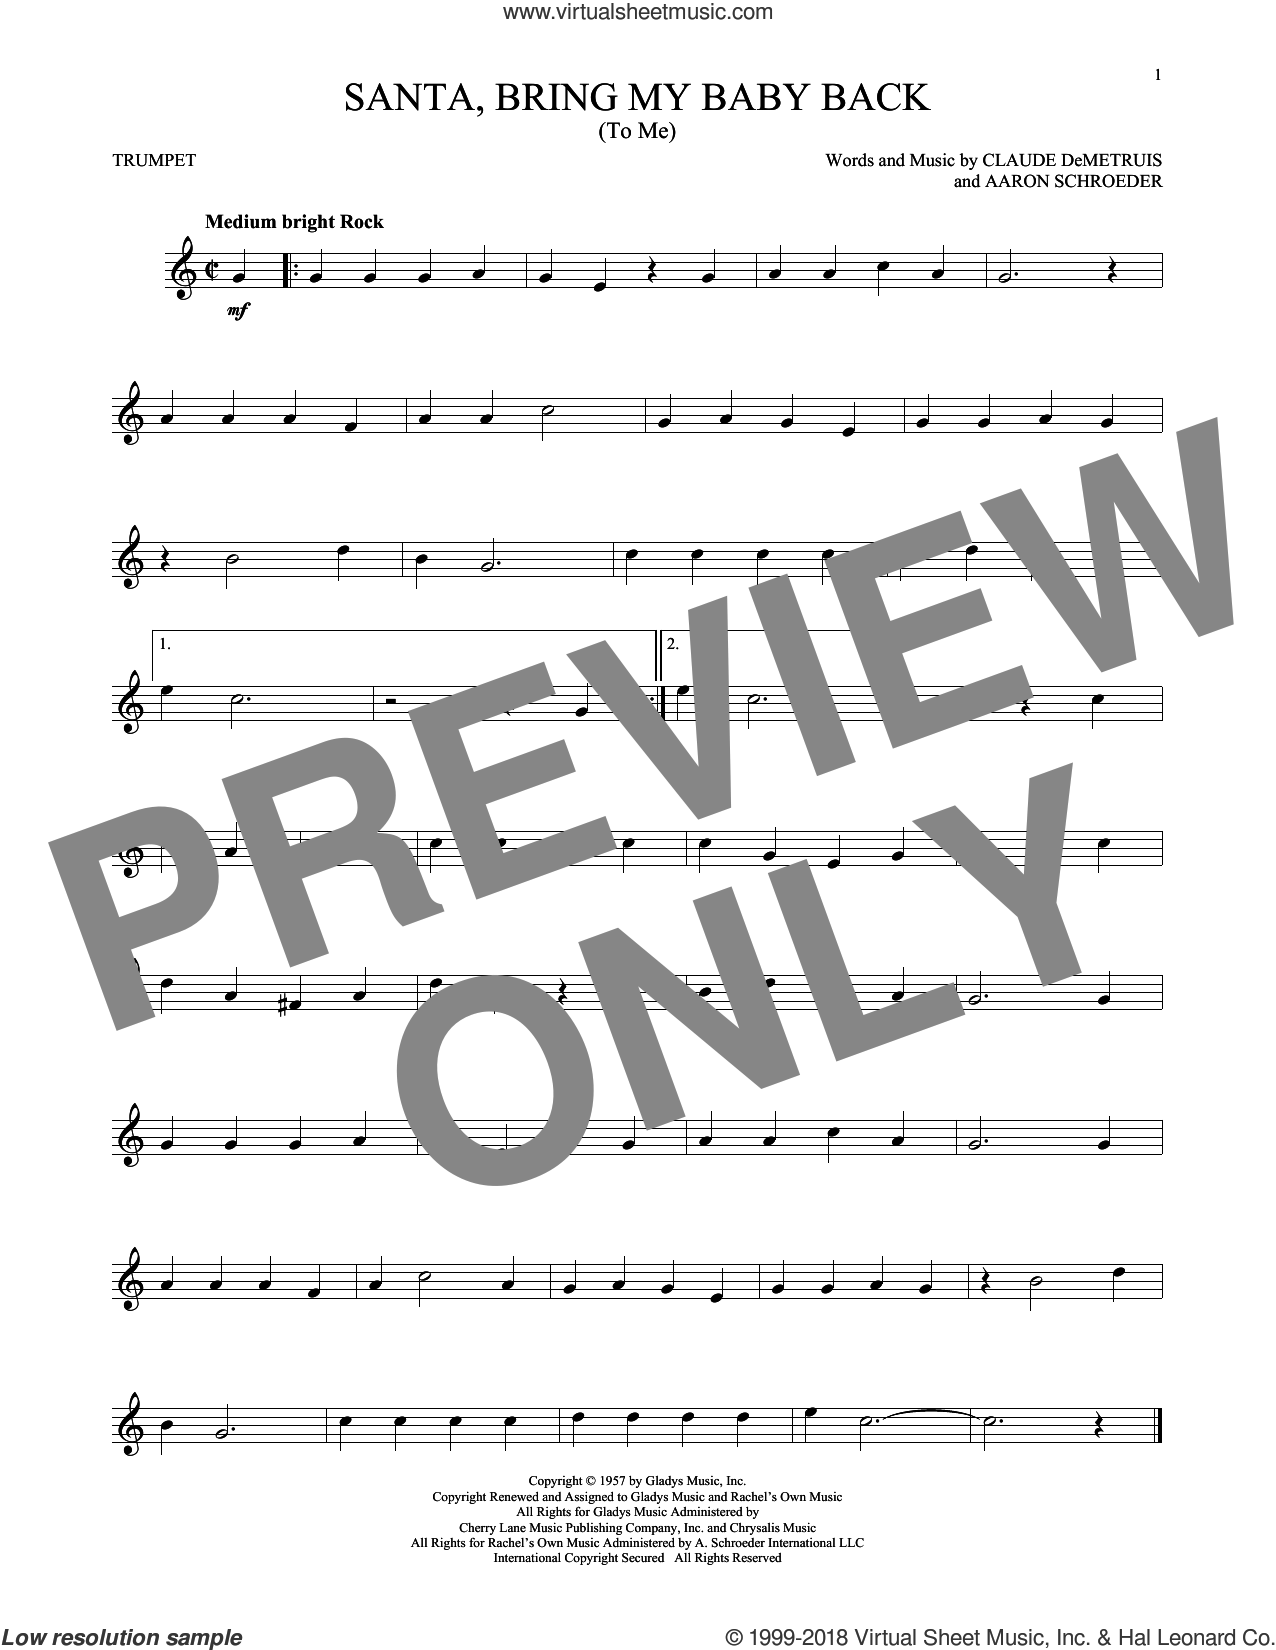 Santa, Bring My Baby Back (To Me) sheet music for trumpet solo by Elvis Presley, Aaron Schroeder and Claude DeMetruis, intermediate skill level